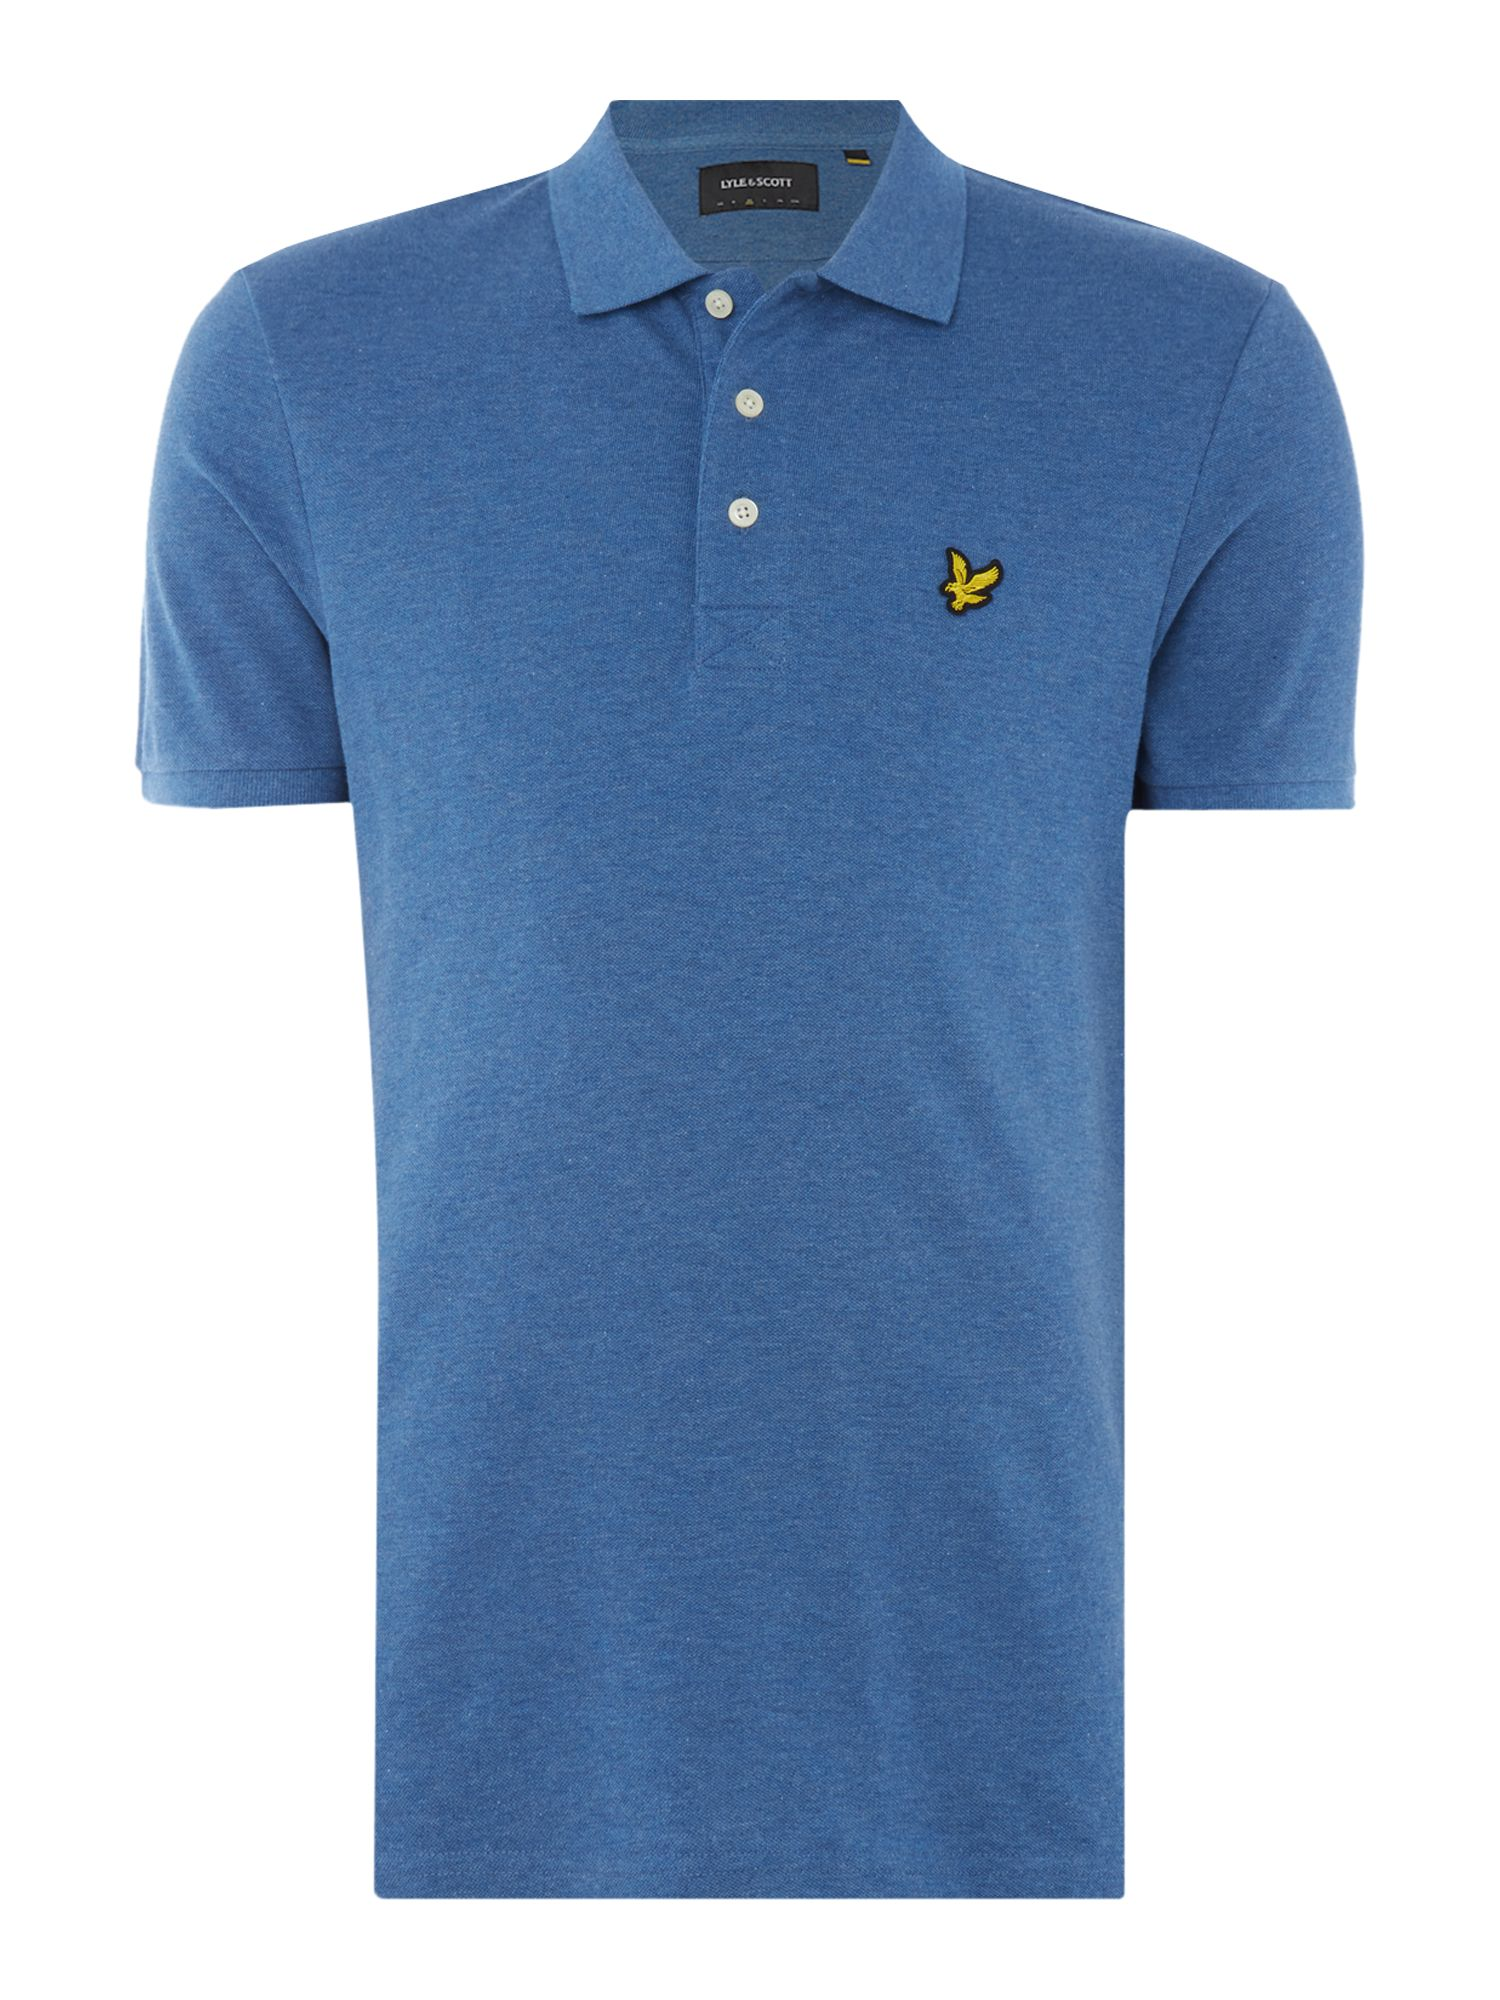 Men's Lyle and Scott Short Sleeve Classic Polo, Storm